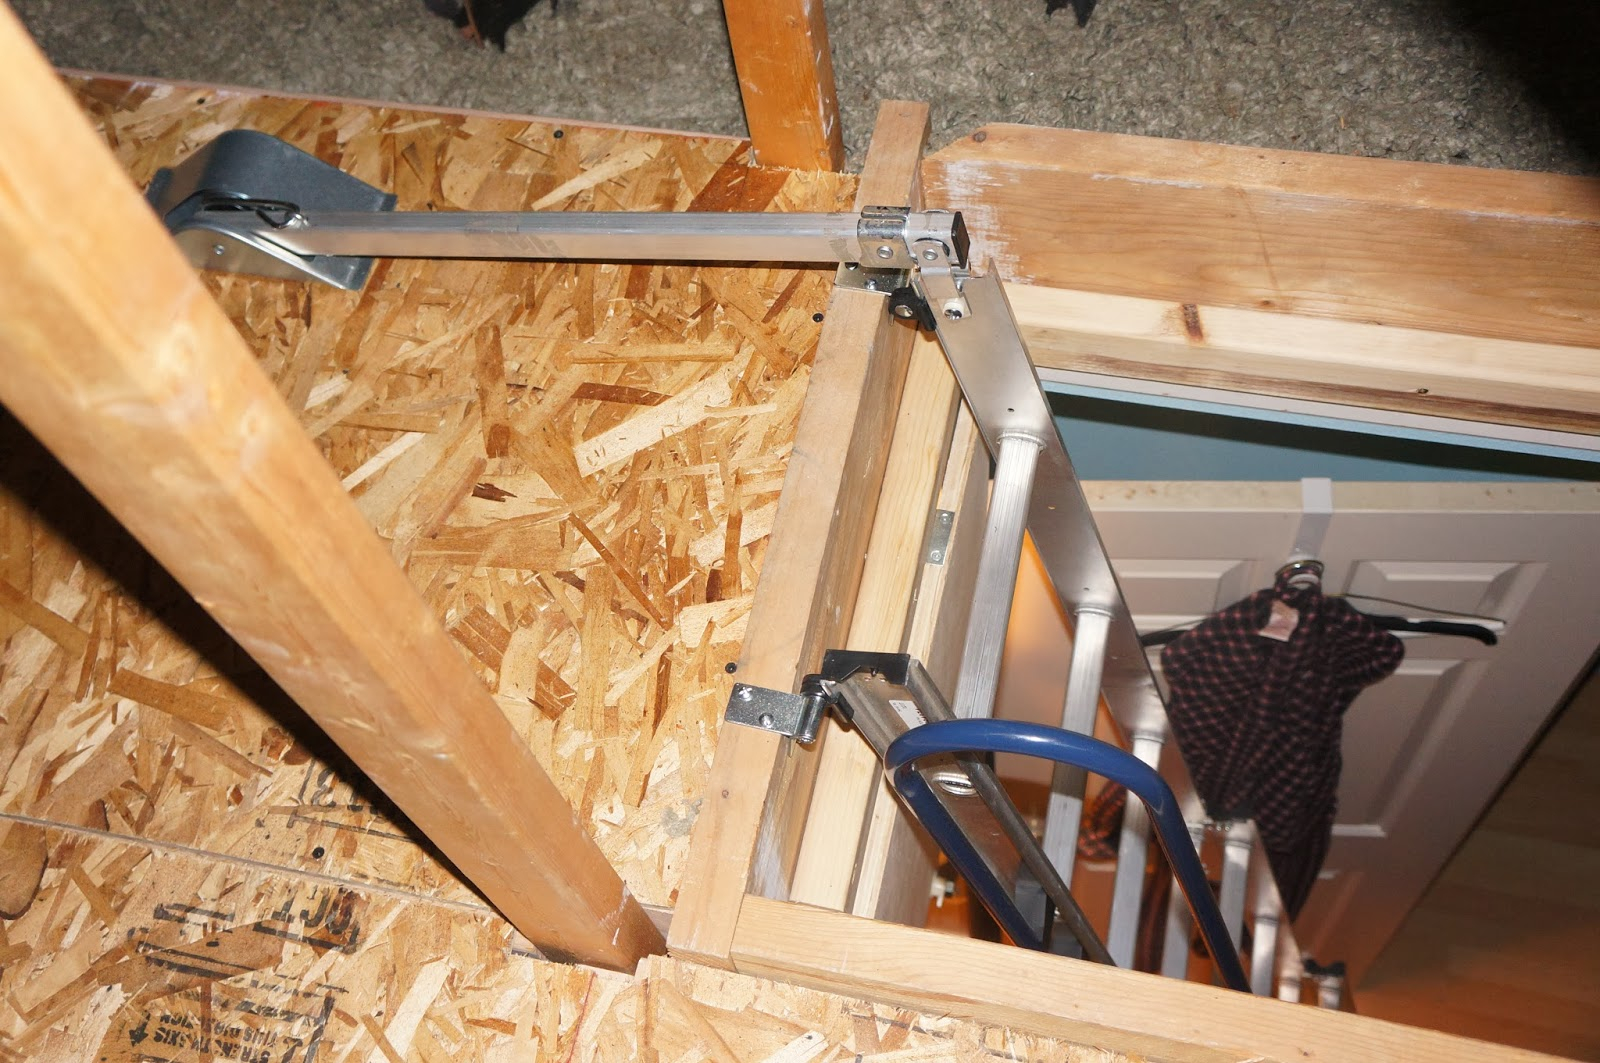 The Fry Family Attic Storage intended for dimensions 1600 X 1063 & Werner Compact Attic Ladder u2022 Attic Ideas